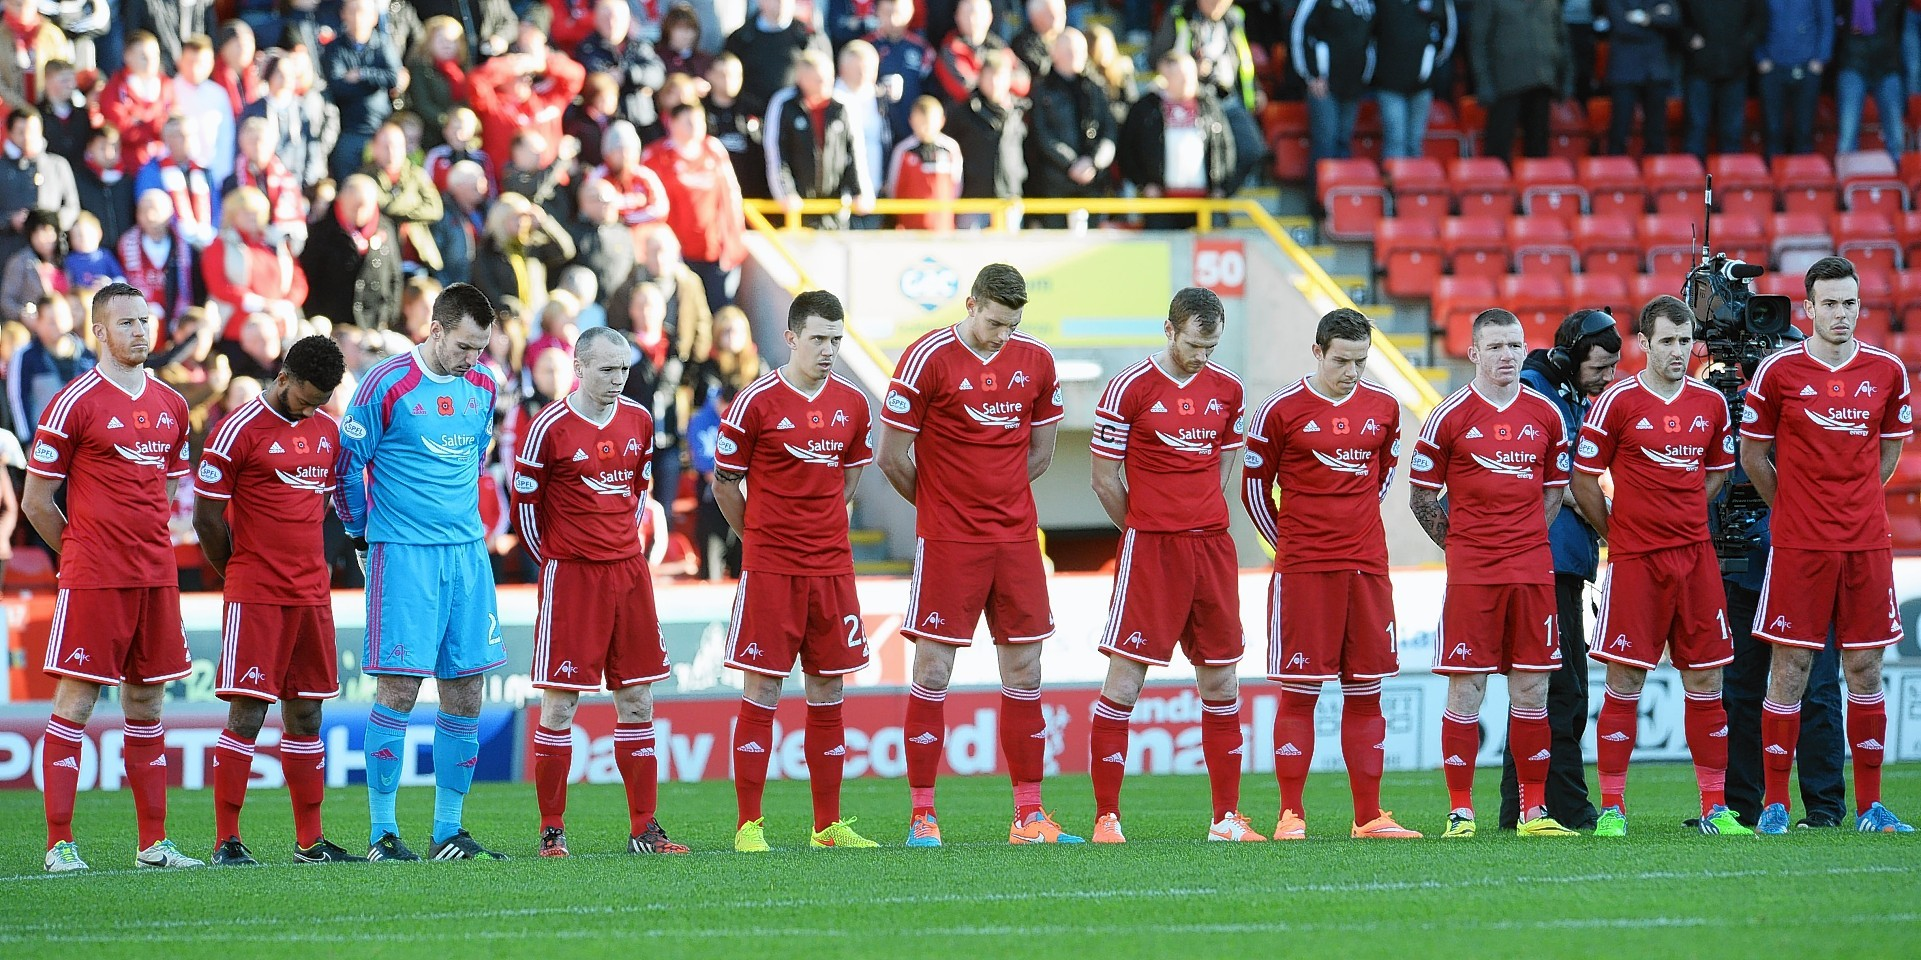 Aberdeen players observe the minute silence at Pittodrie